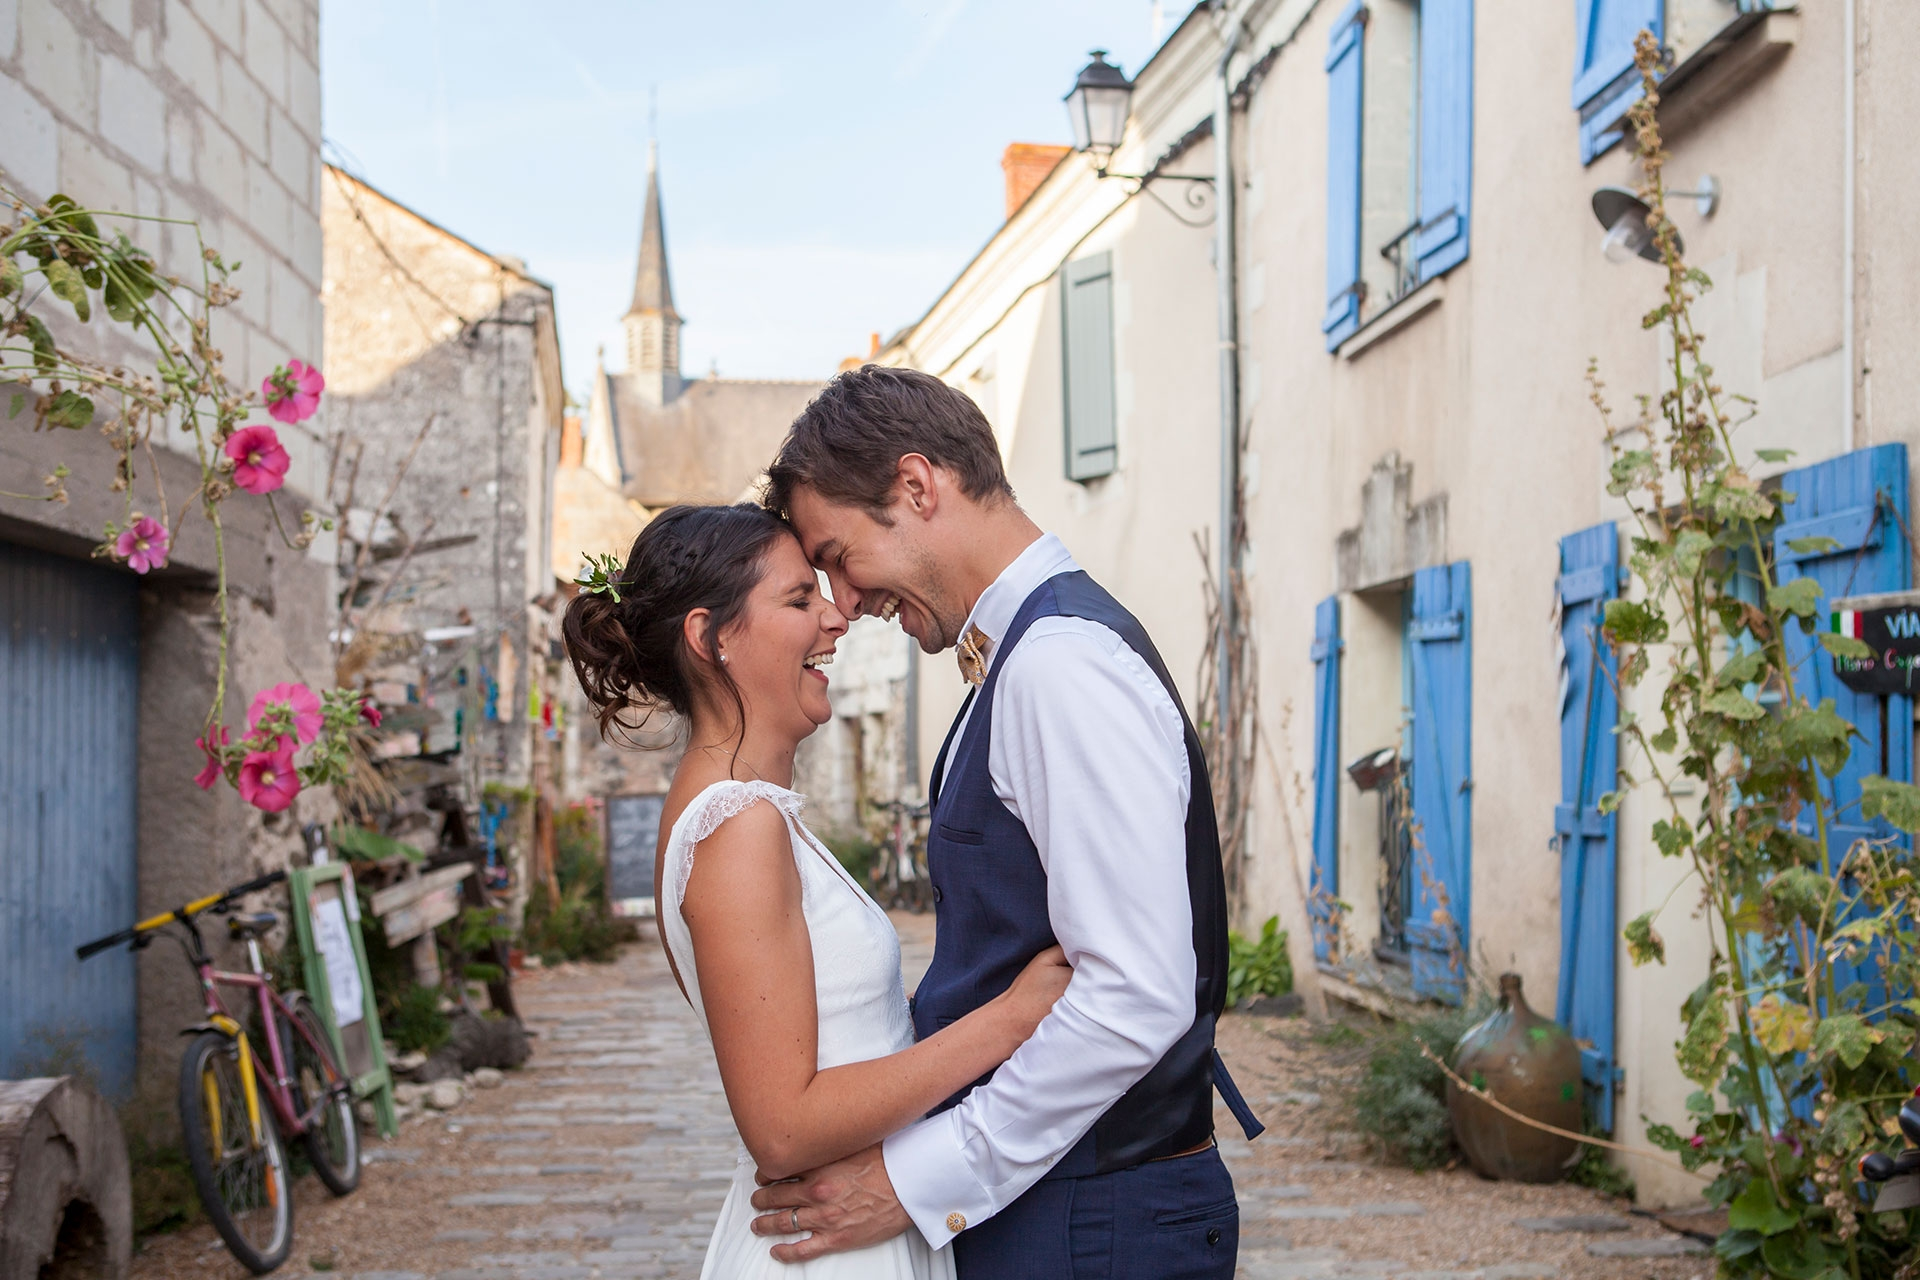 particuliers-evenements-mariage-oui-elise&quentin-71